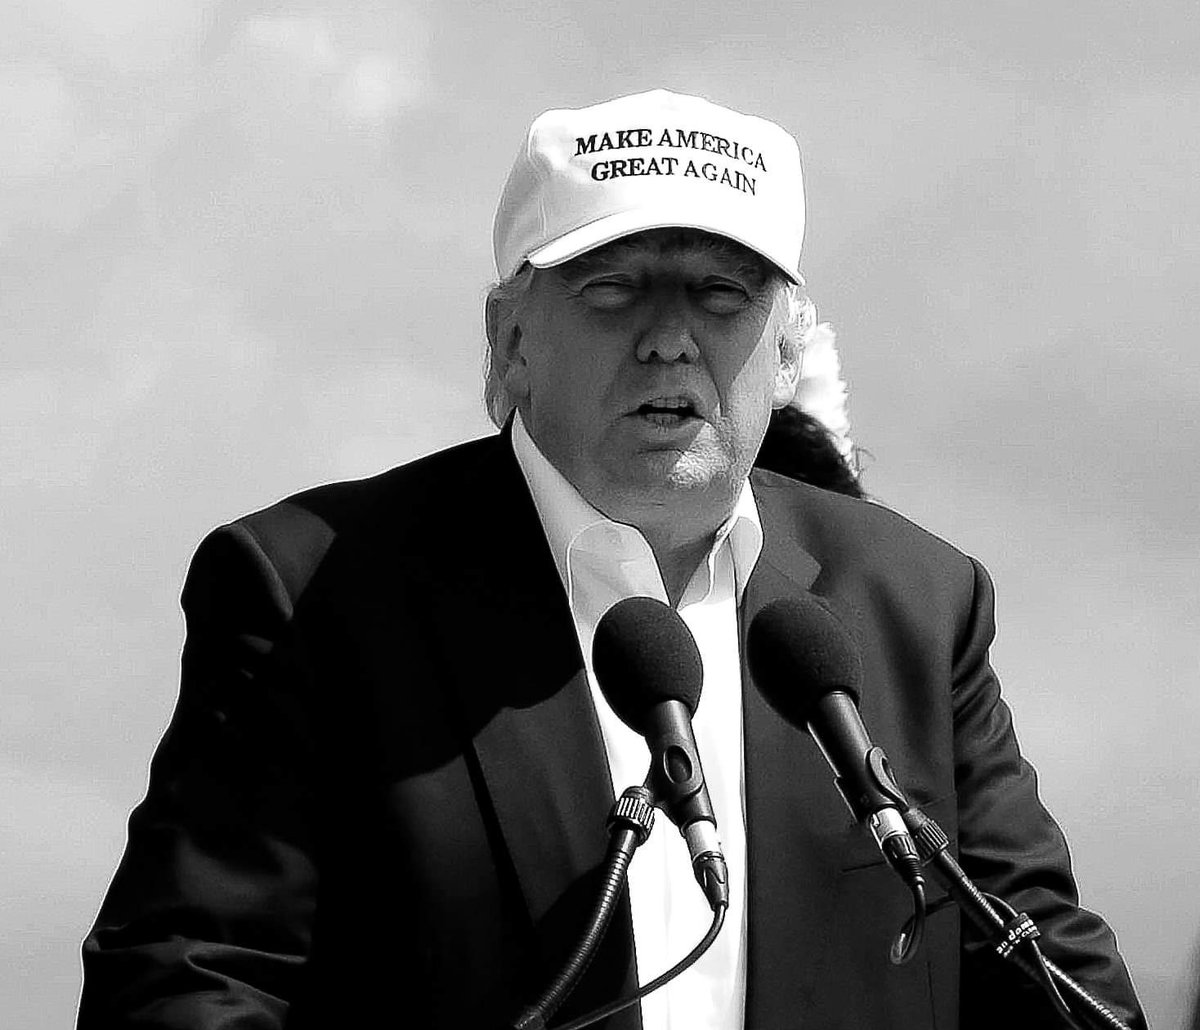 """Just before I took this photograph of Donald Trump in 2016 (day after Brexit vote) a press photographer standing next to me said, loudly, """"I wish I was holding an elephant gun instead of this camera."""" #ByeByeTrump"""